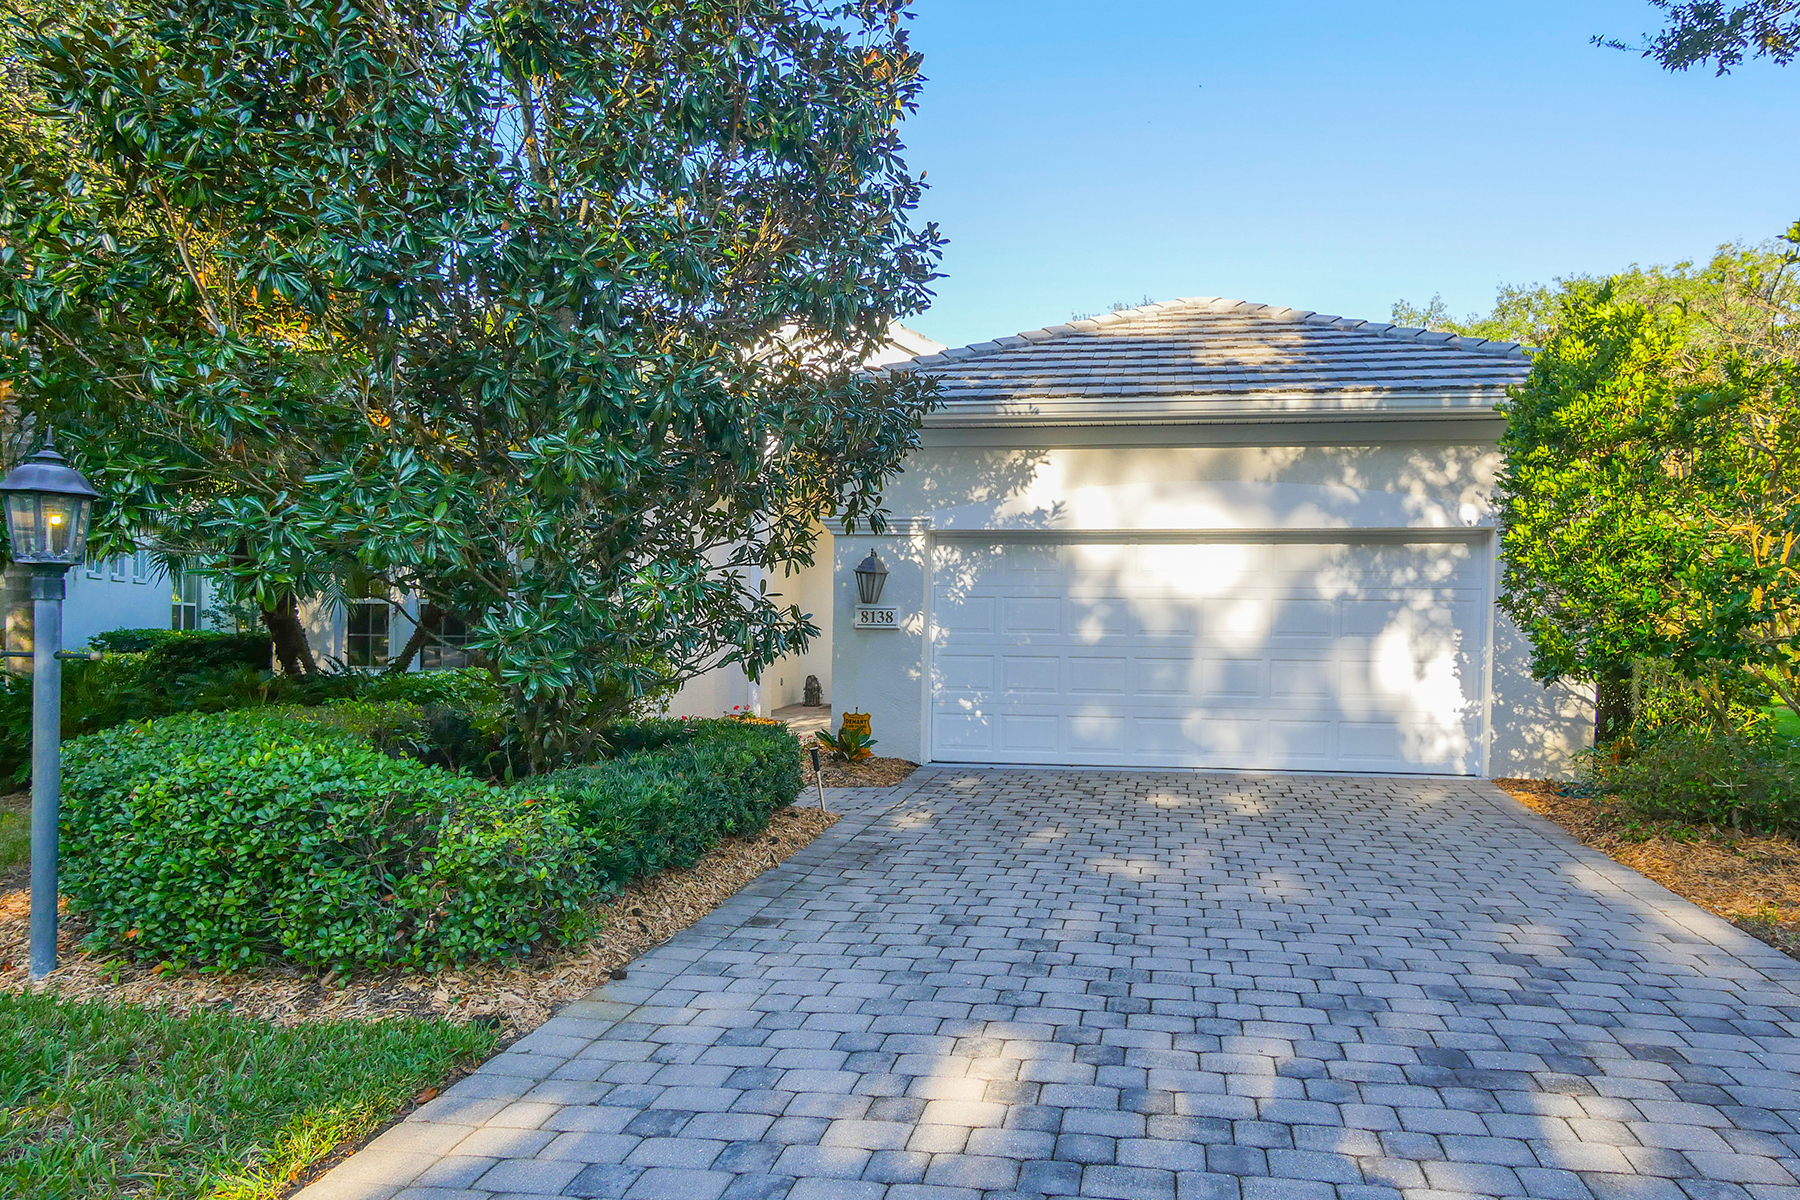 Single Family Home for Sale at UNIVERSITY PARK COUNTRY CLUB 8138 Dukes Wood Ct University Park, Florida, 34201 United States